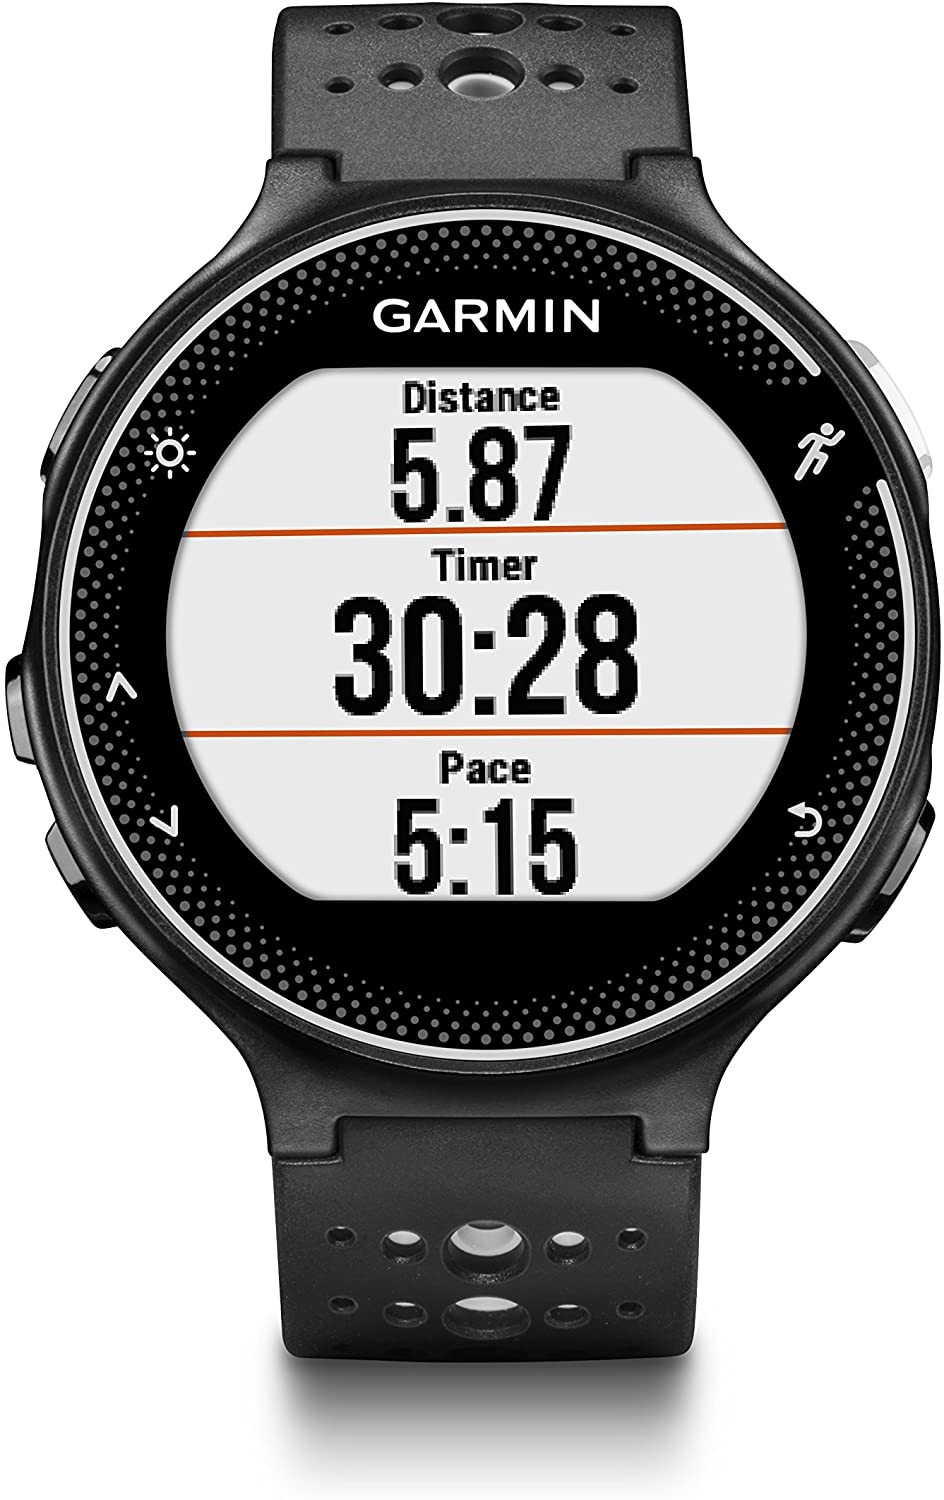 Garmin Forerunner 235 Best Waterproof Smartwatches